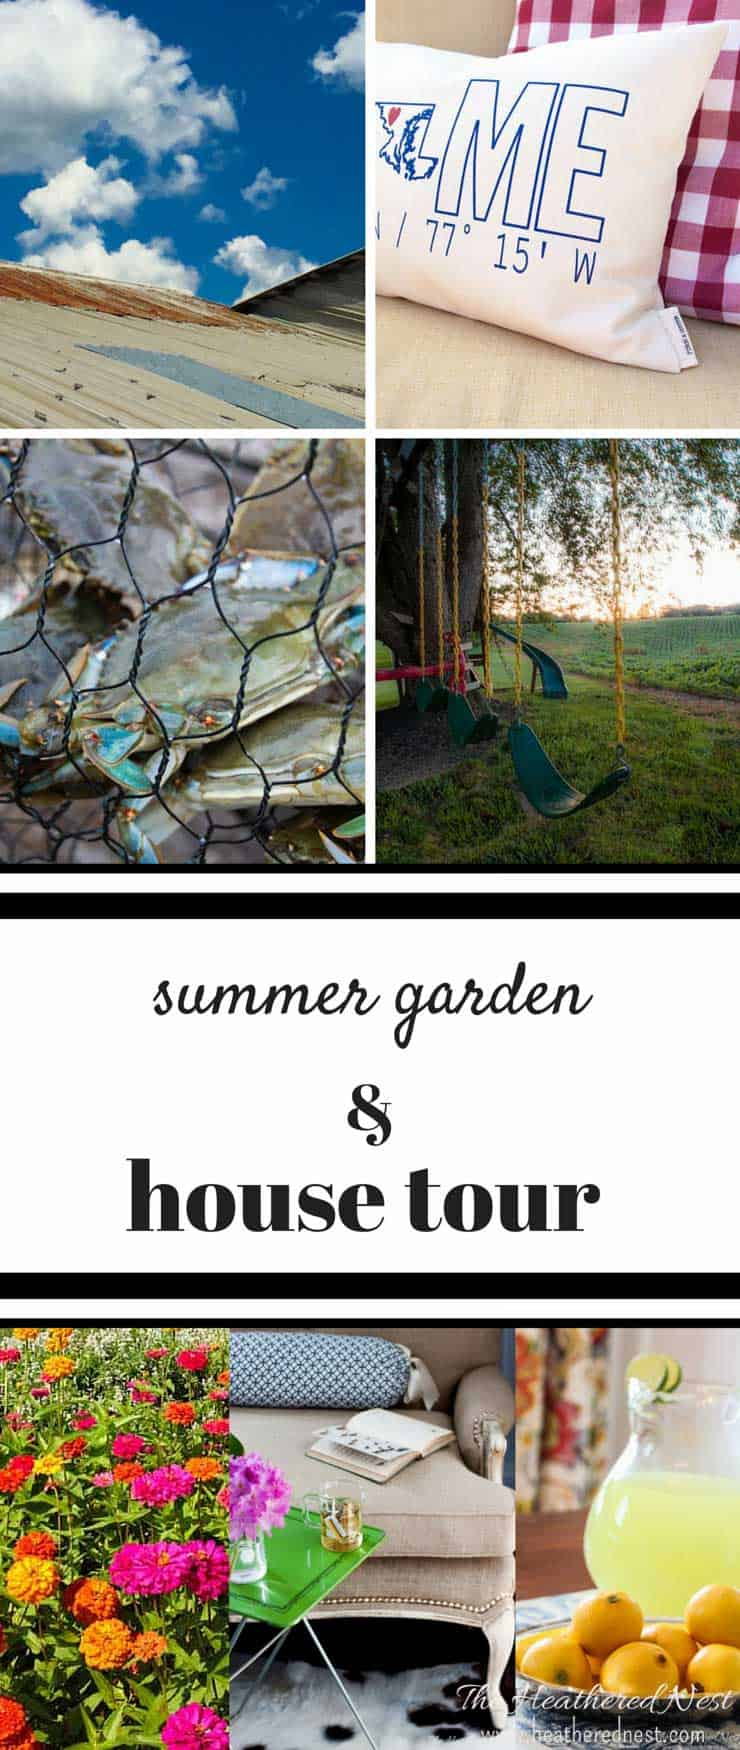 GORGEOUS summer garden and house tour from home decor and DIY blogger heathered nest!!